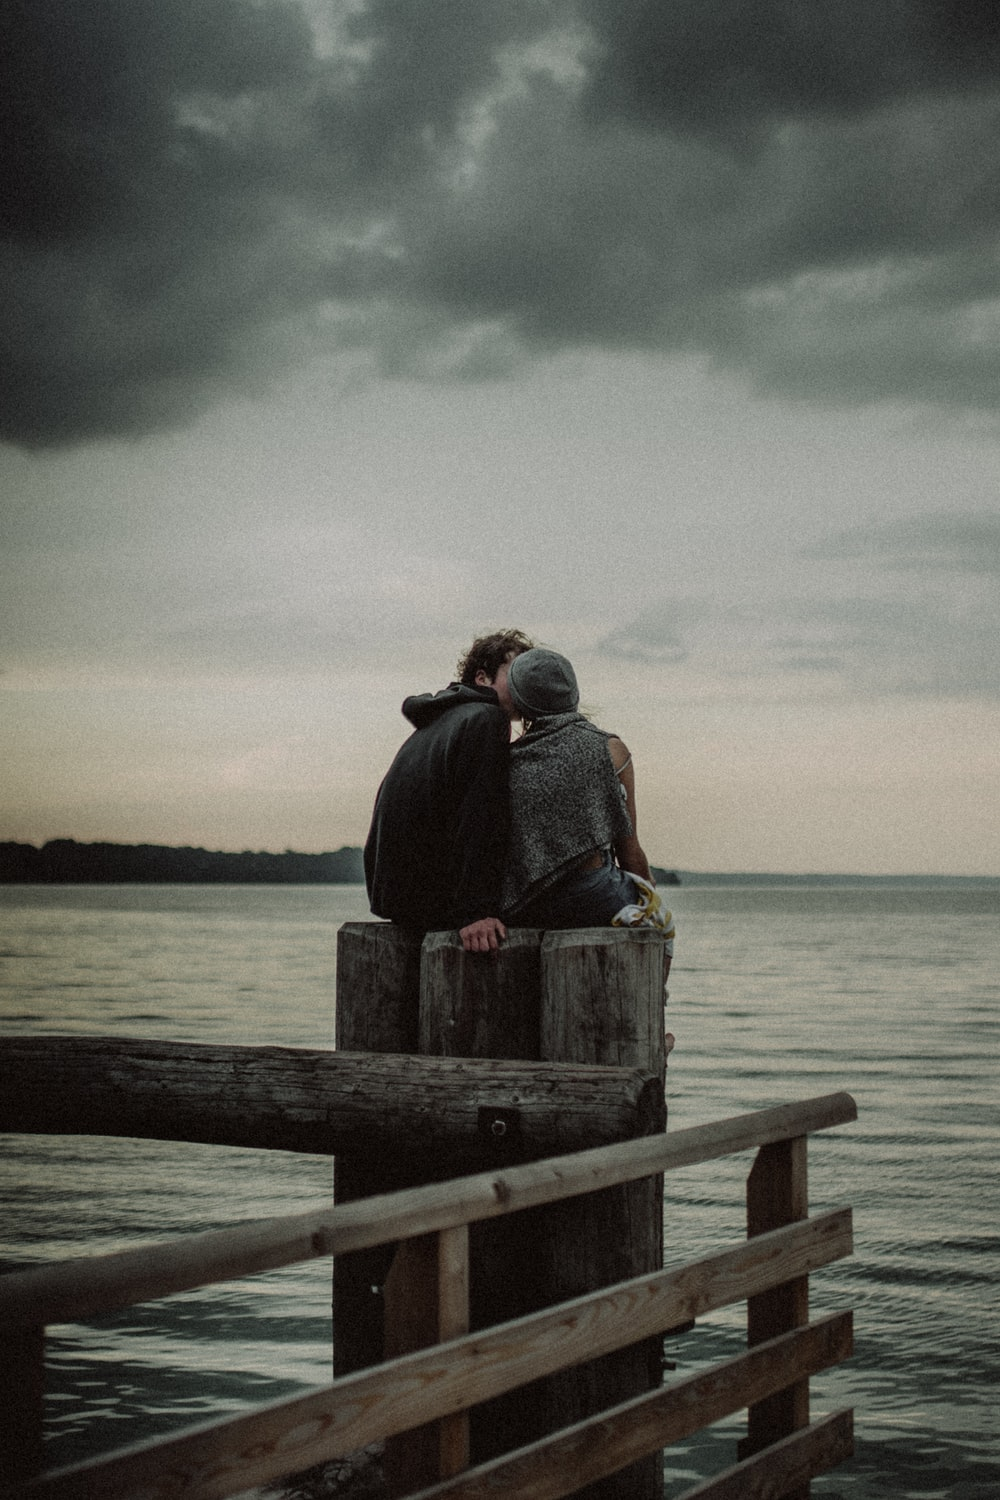 man and woman sitting and kissing on post near the body of water